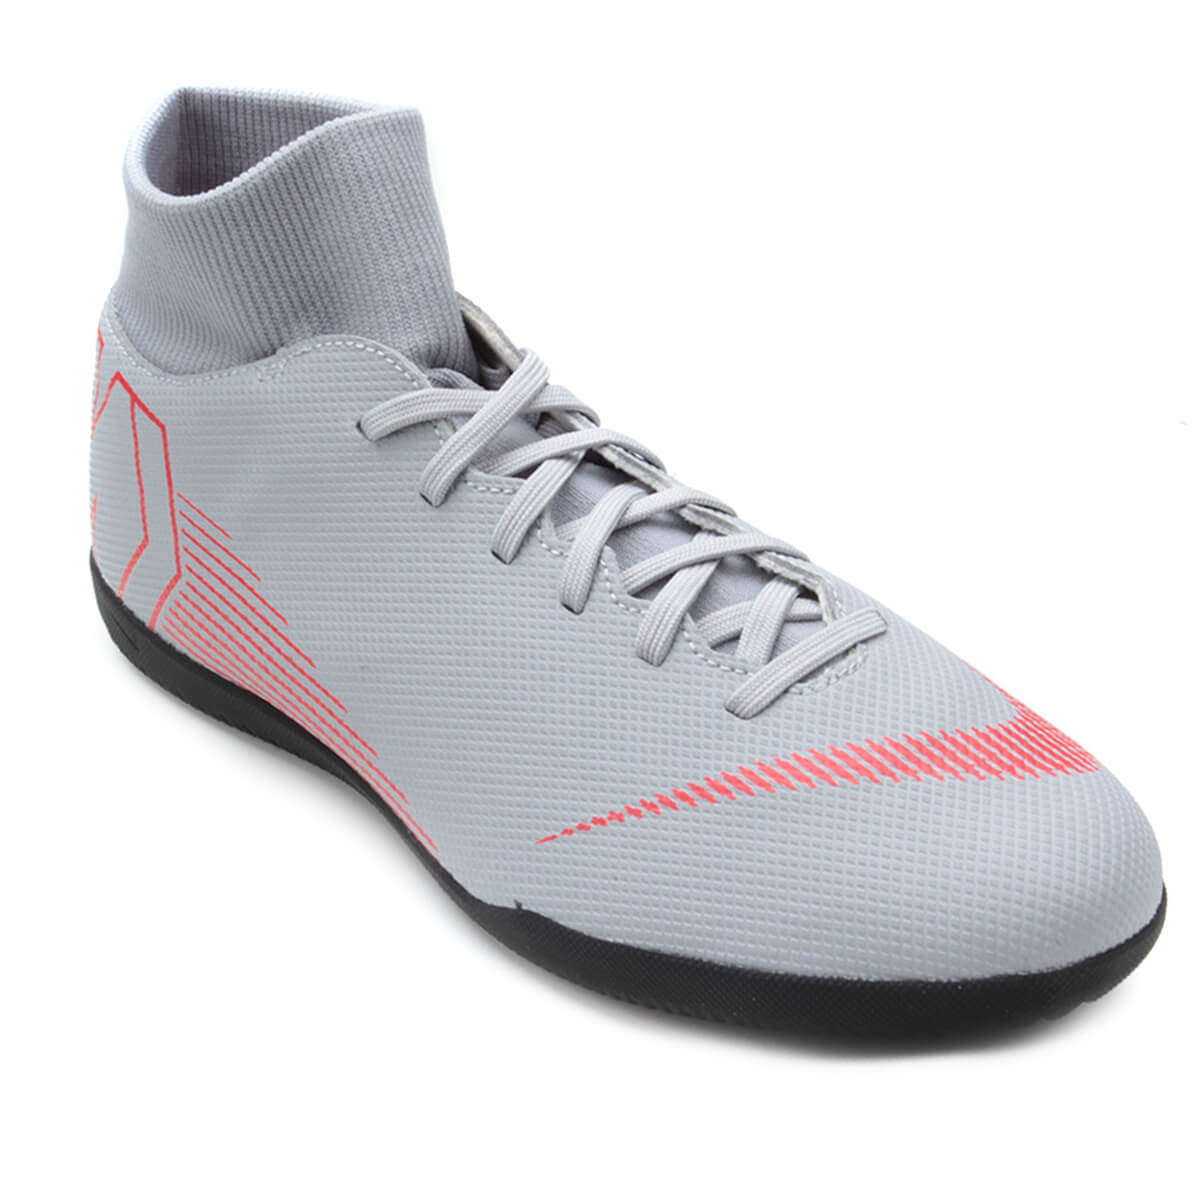 Chuteira Futsal Nike Mercurial Superflyx 6 Club Ic - BRACIA SHOP ... 3f84f3439dd55